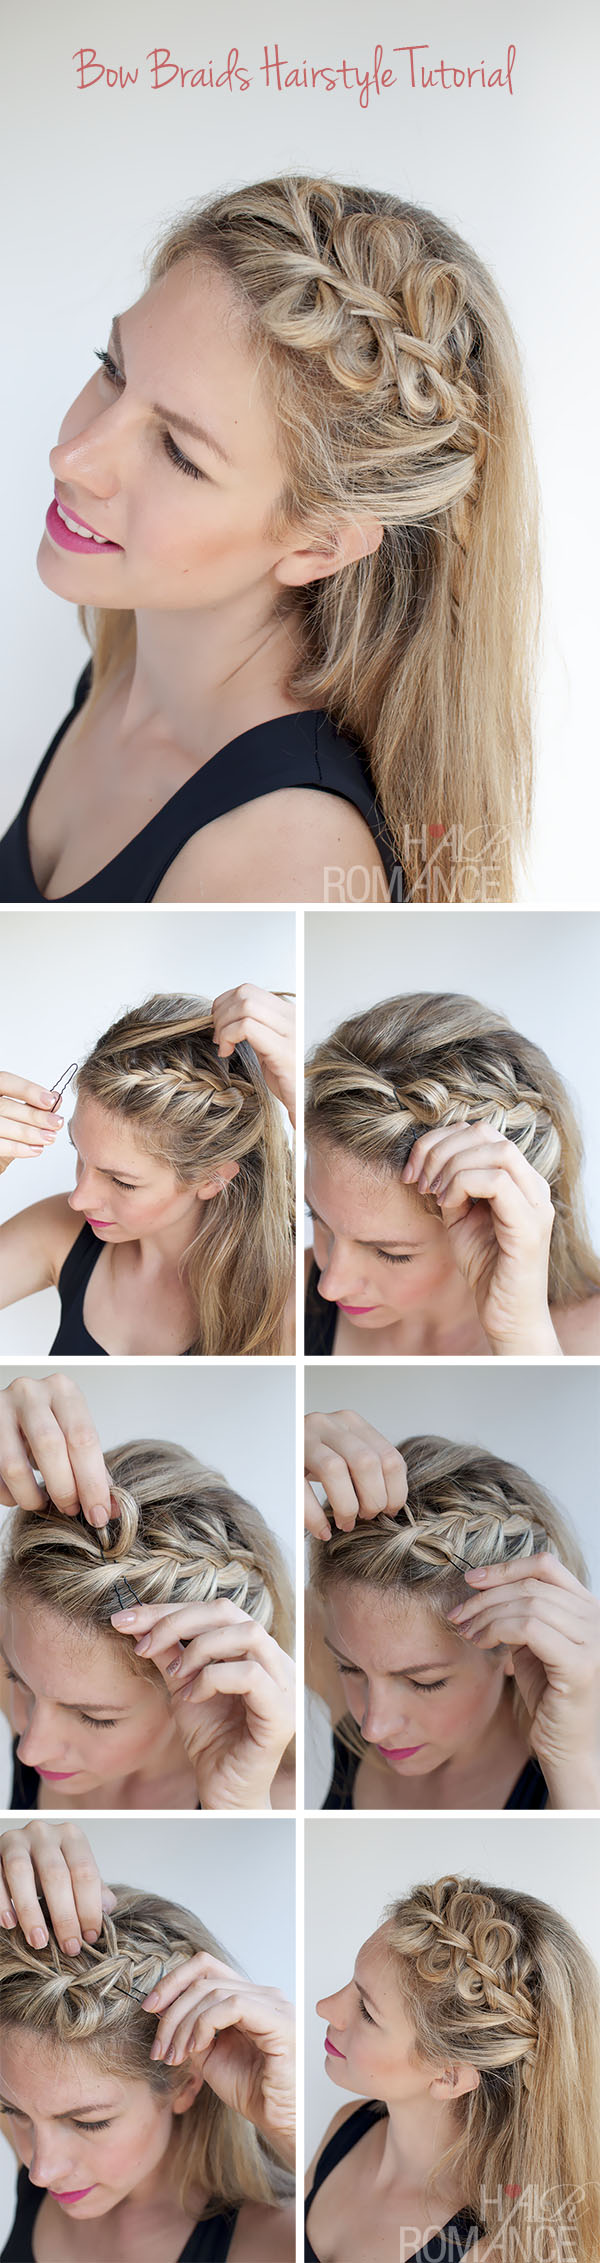 Tremendous How To Braid Hair Styles Braids Hairstyles For Women Draintrainus